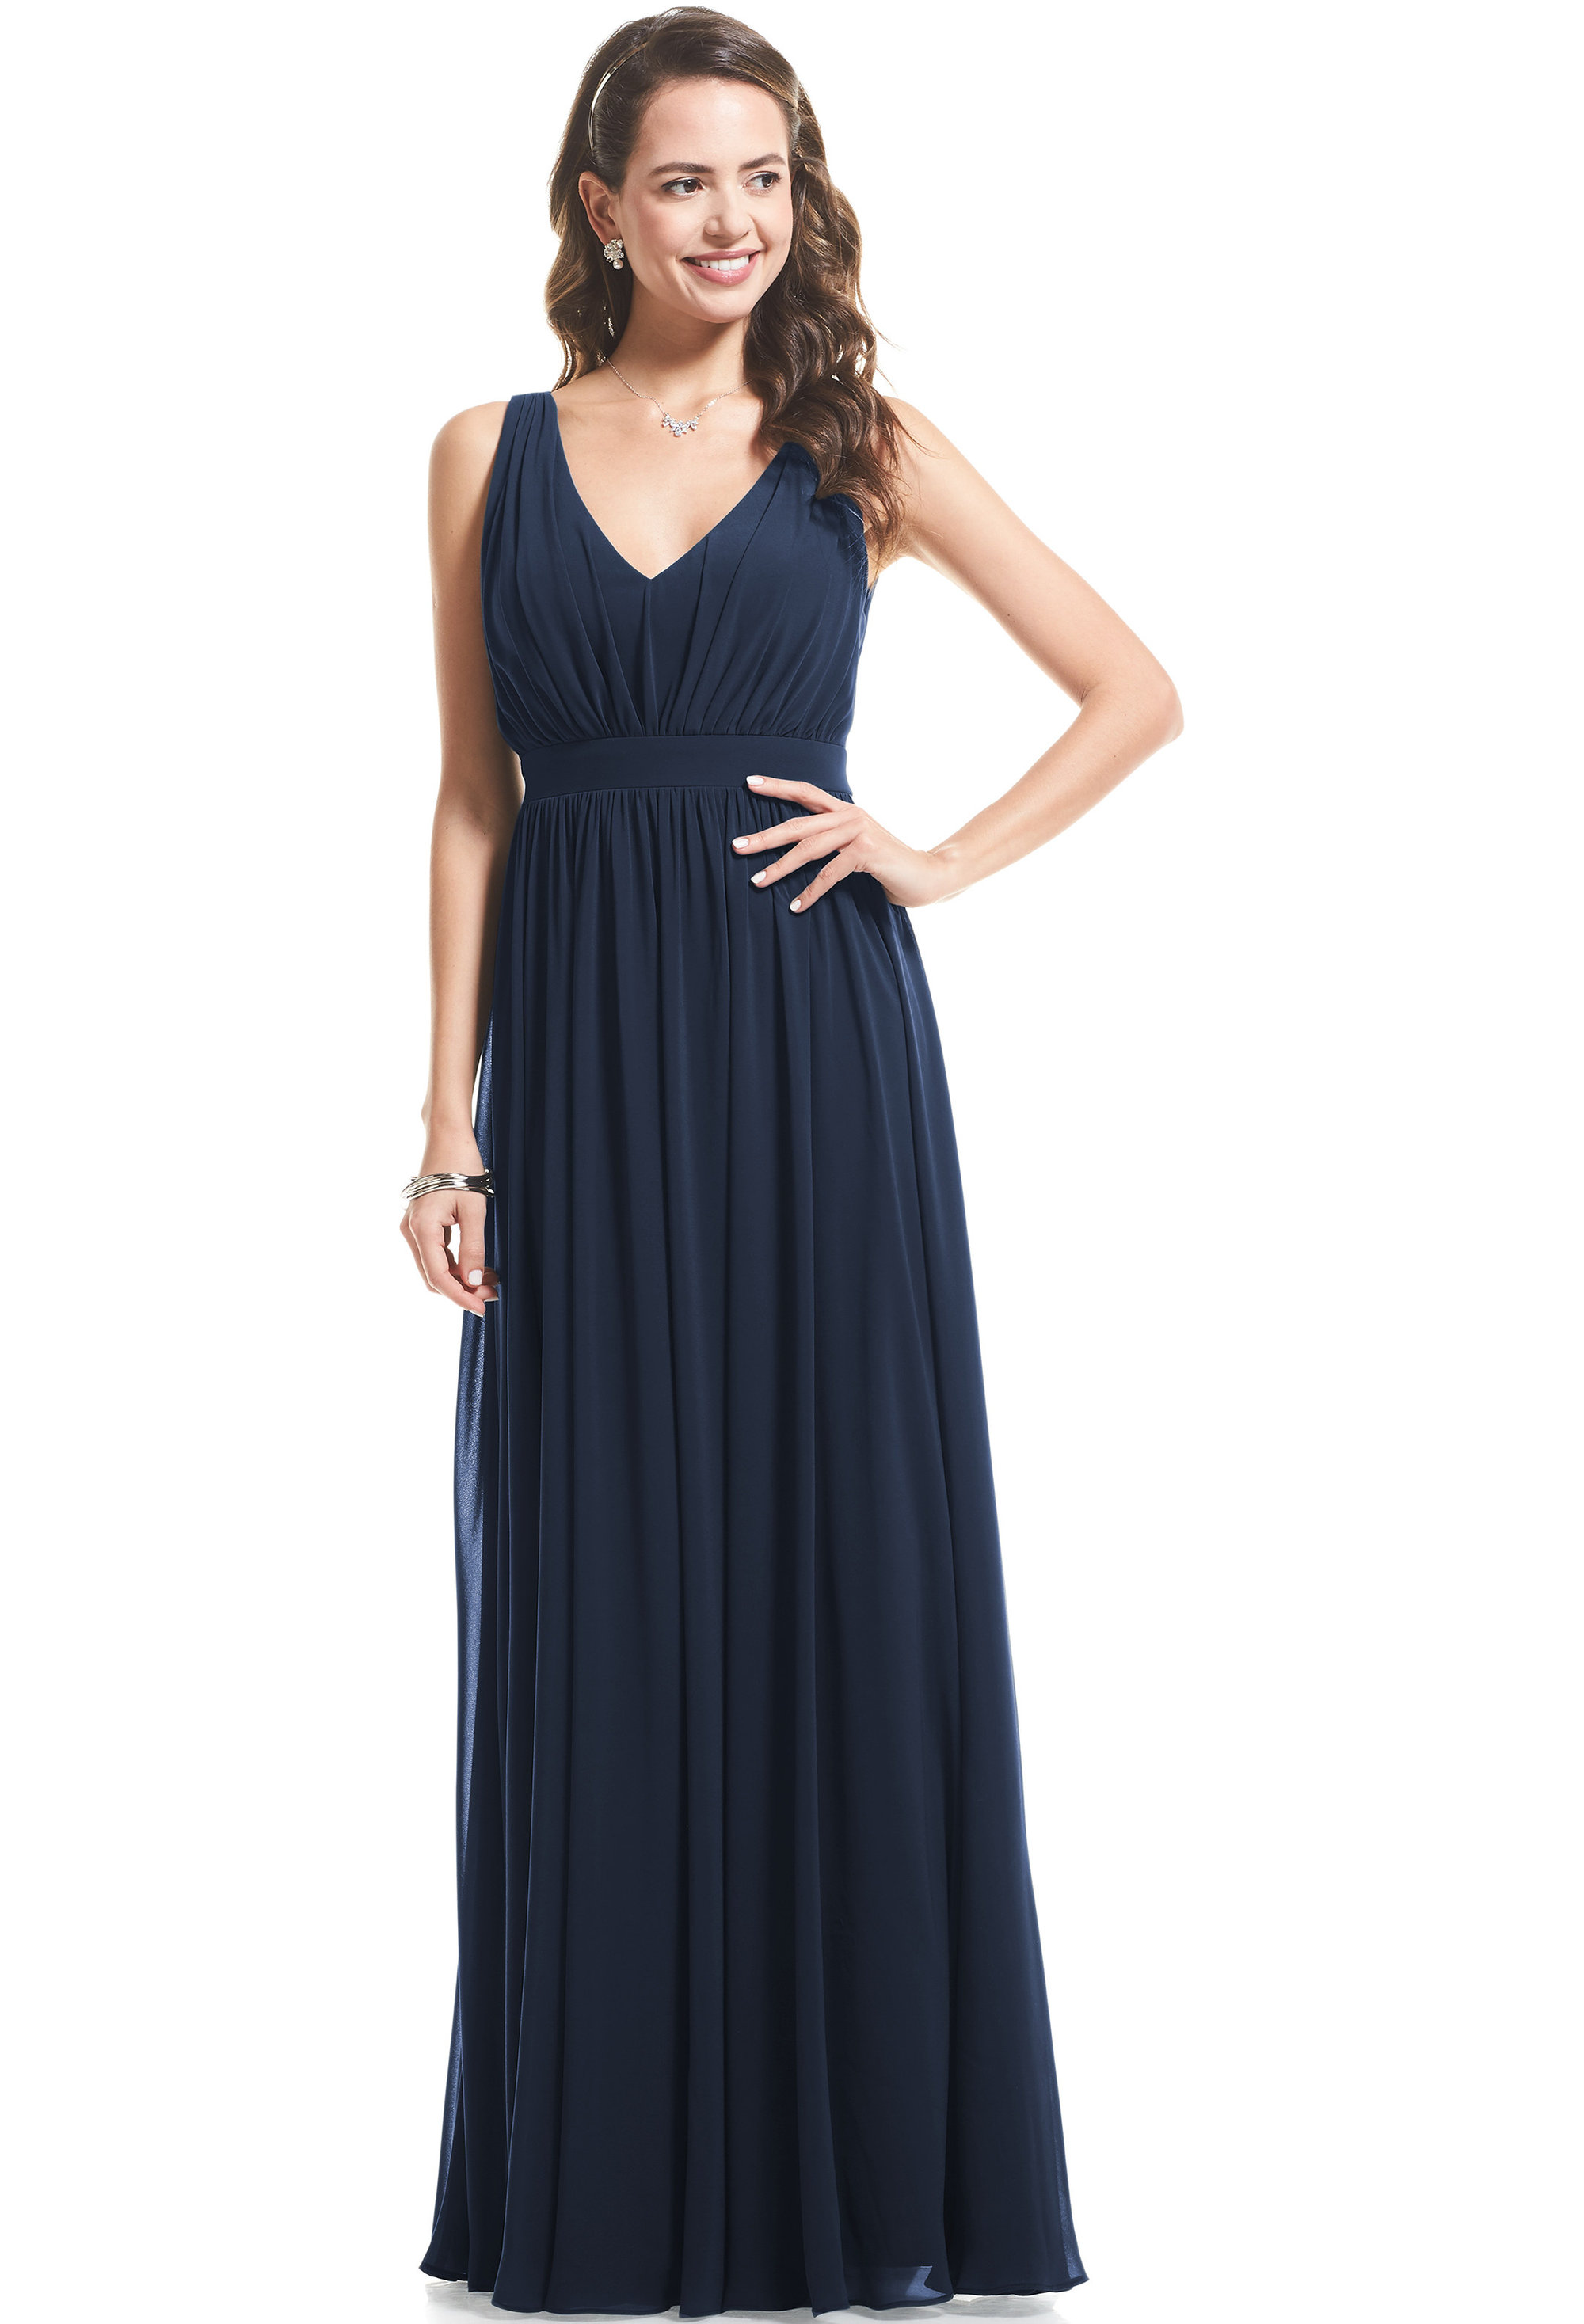 Bill Levkoff NAVY Chiffon V-neck A-Line gown, $89.00 Front